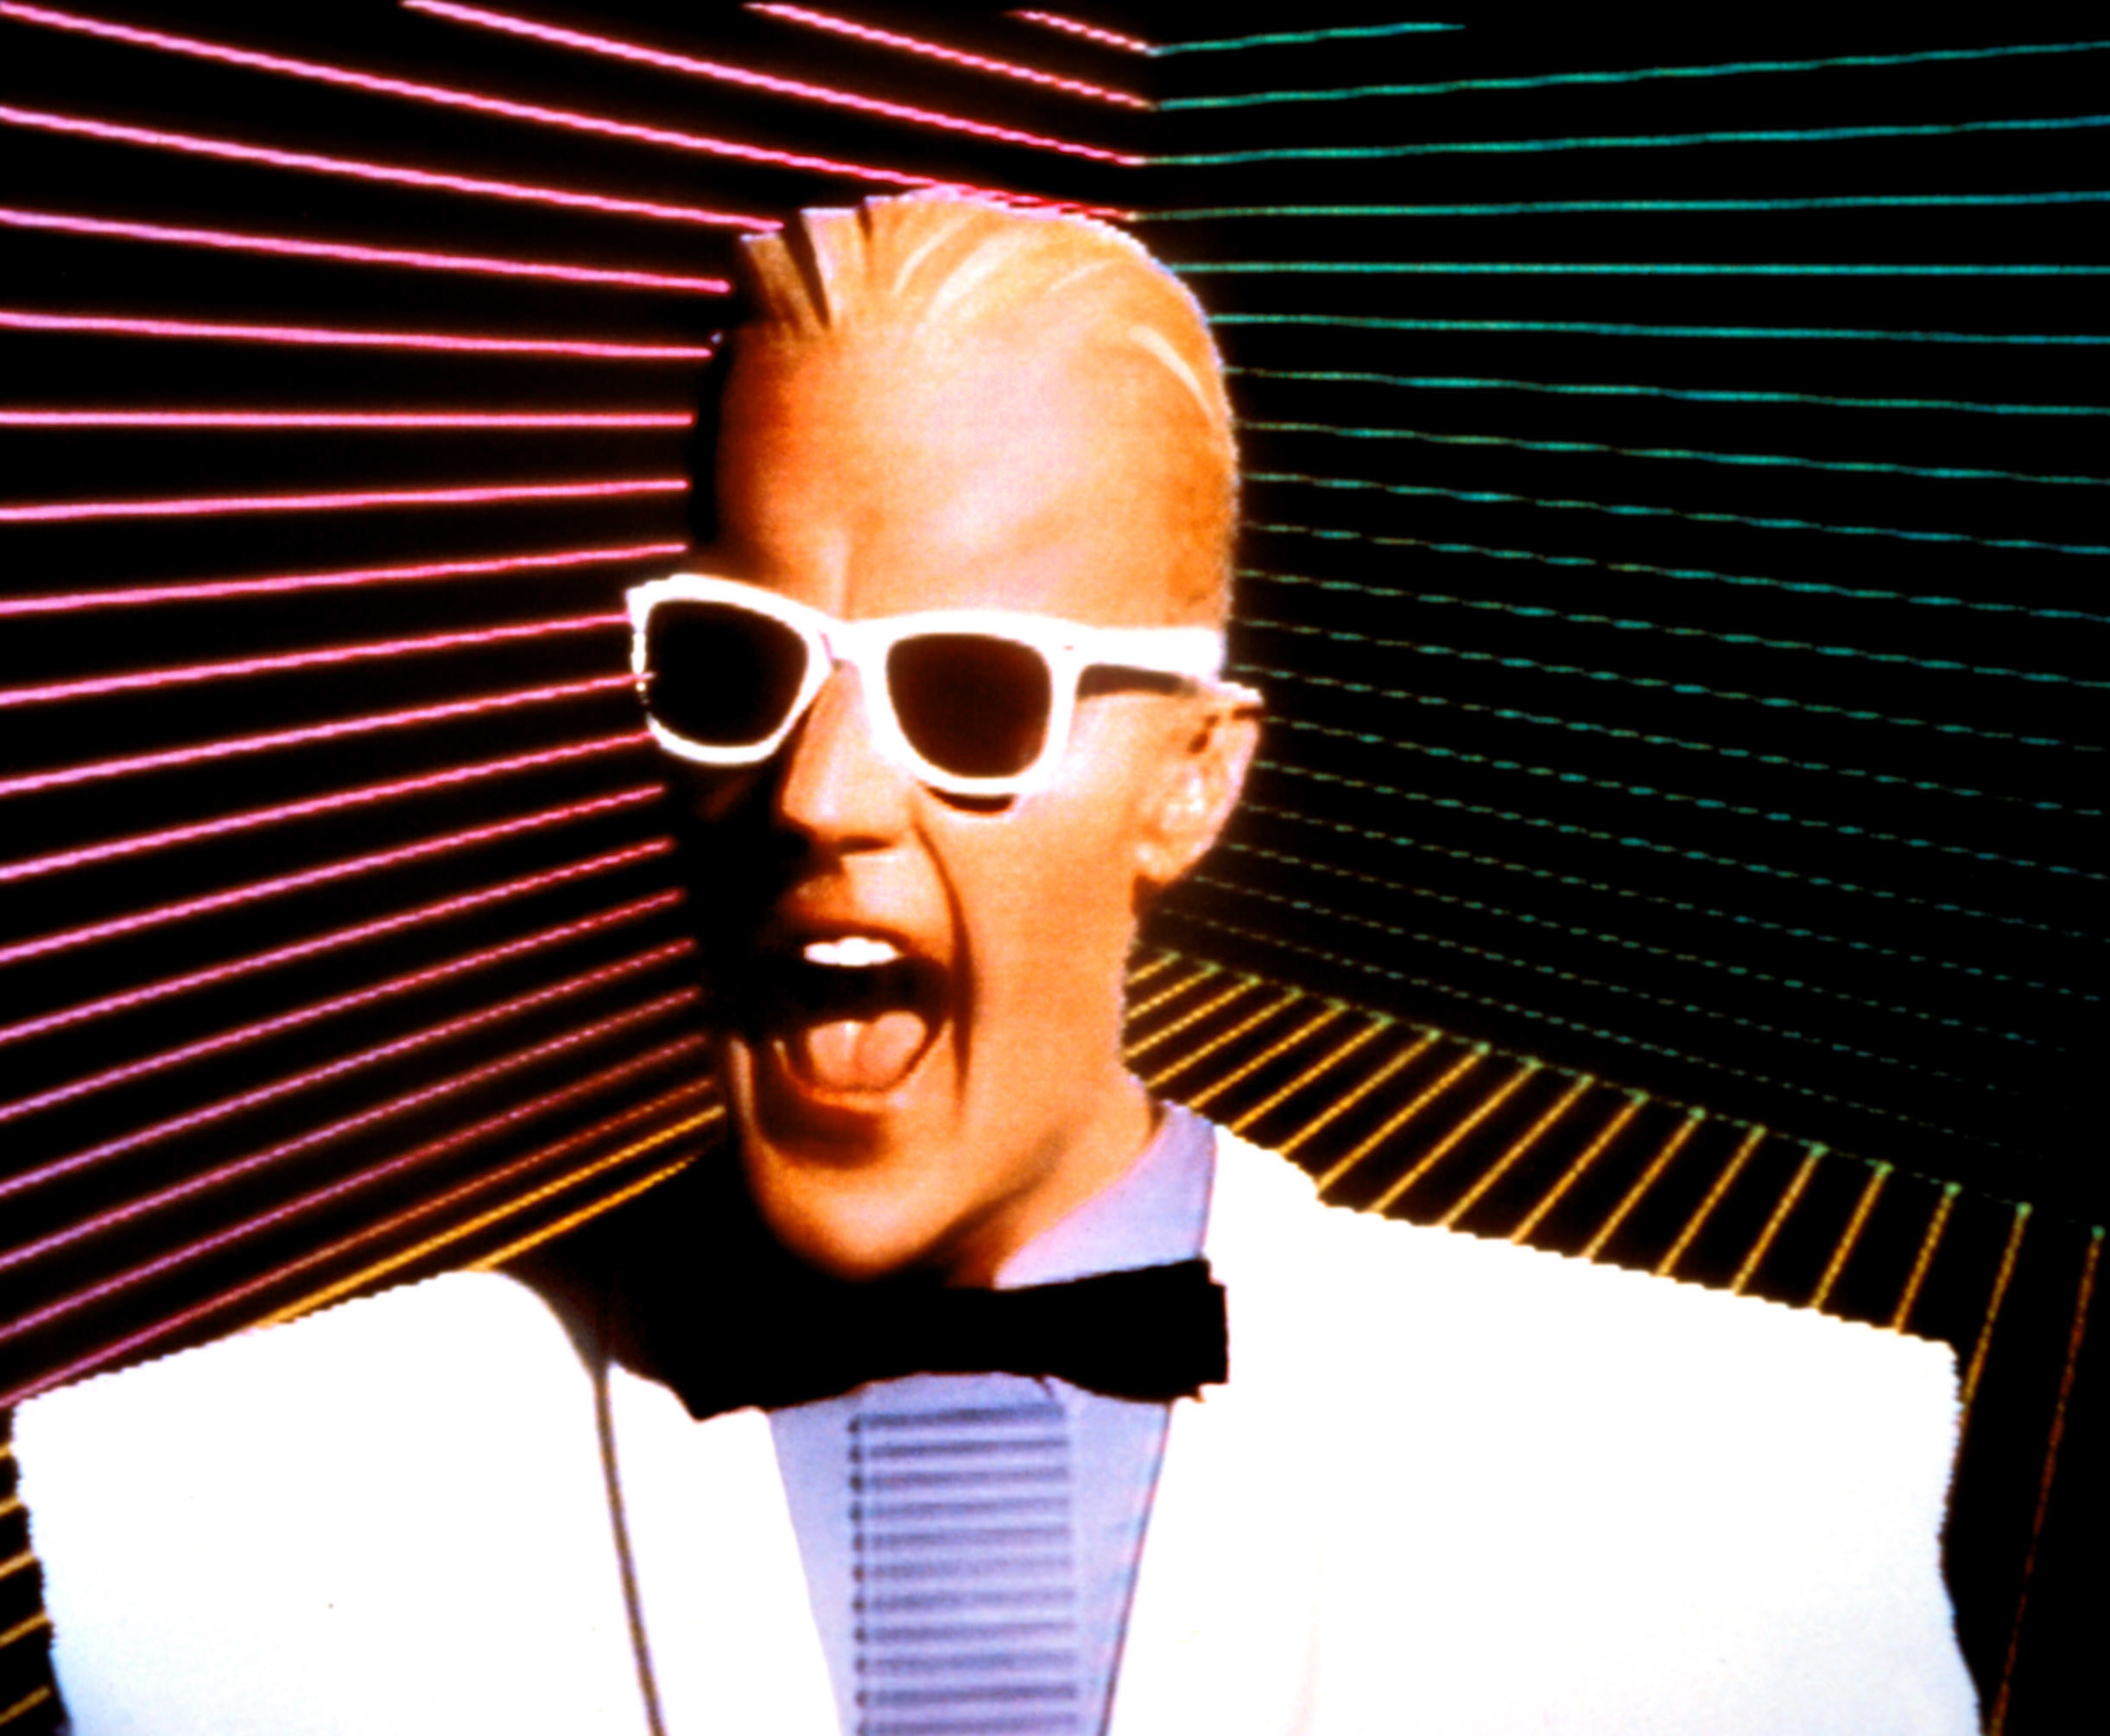 A promotional photo of Max Headroom wearing white Wayfarer sunglasses and a white suite with large shoulder pads